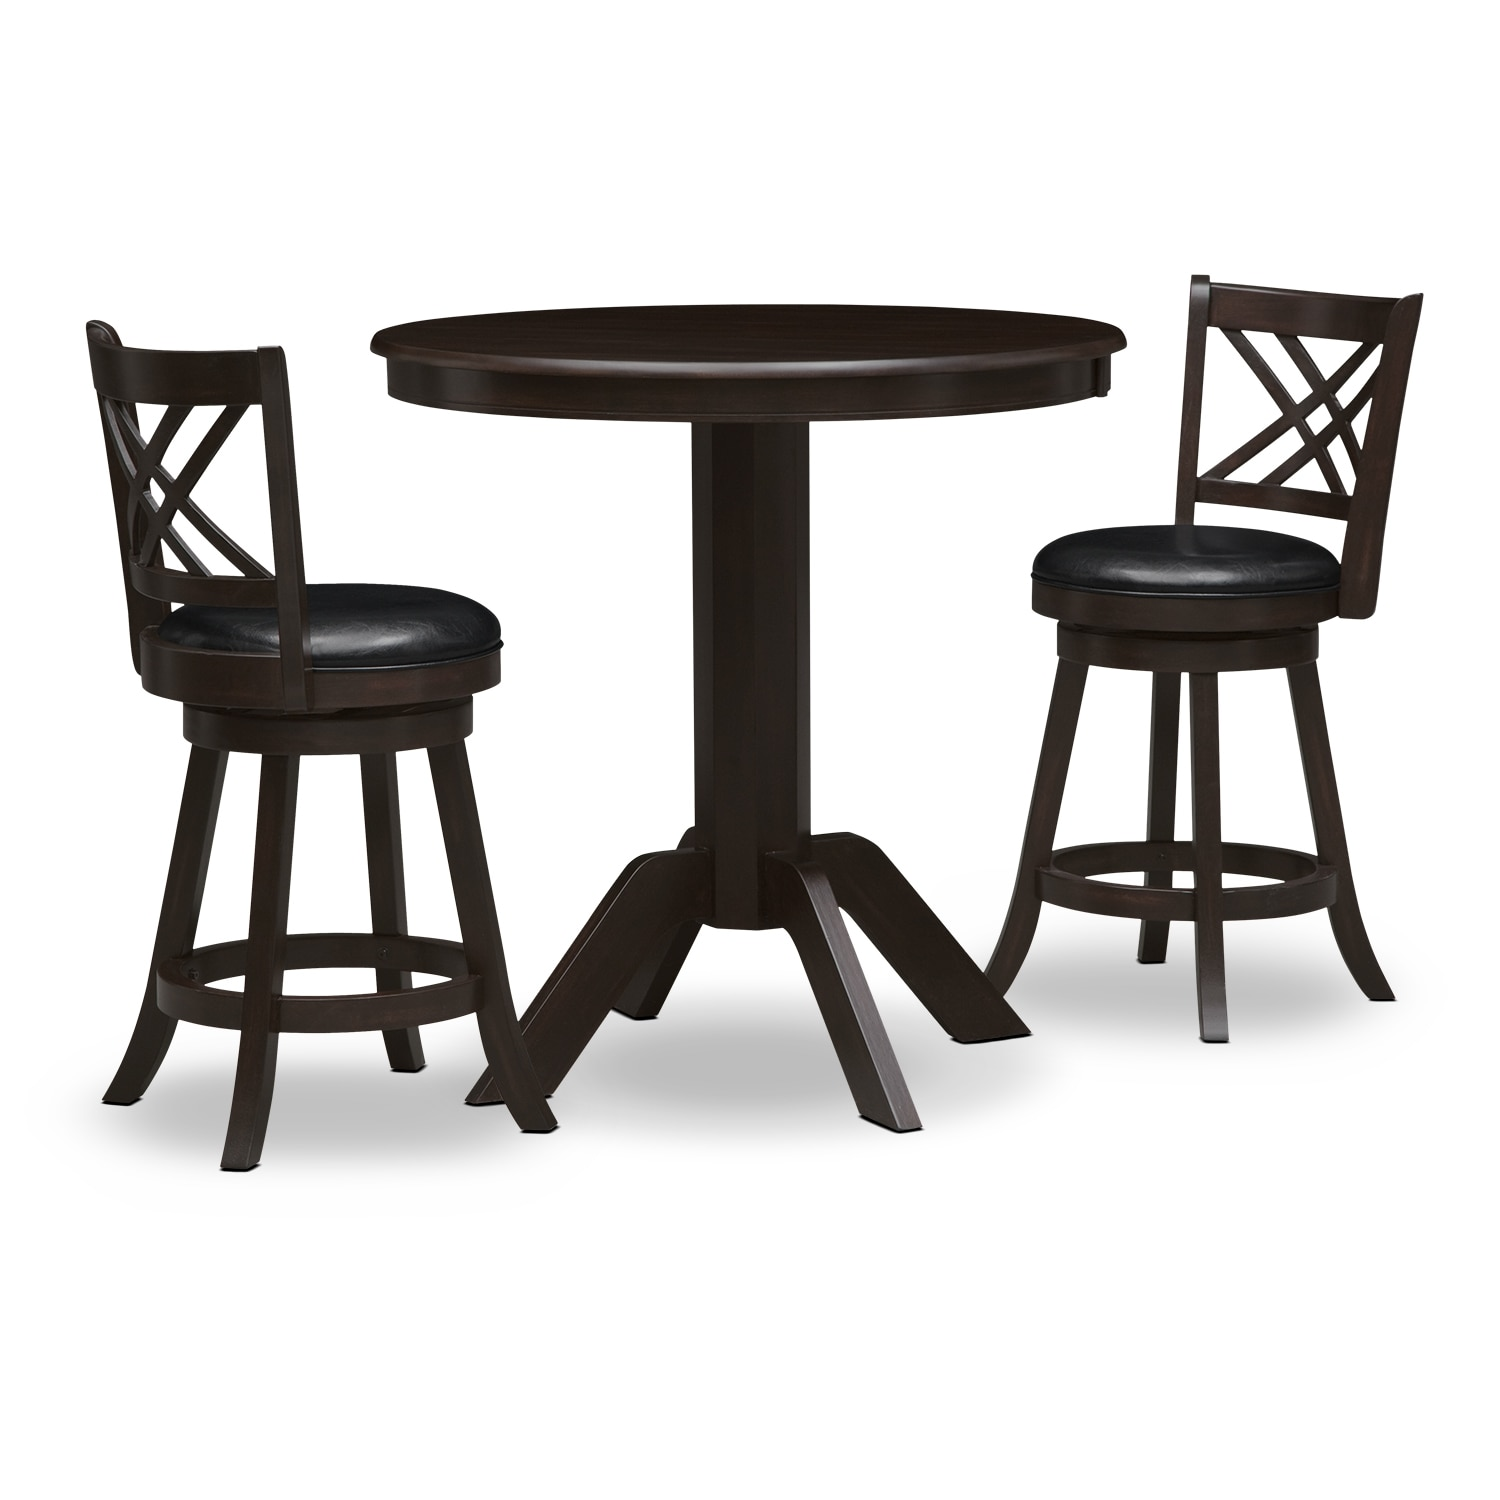 Dining Room Furniture - Concord Pub Table and 2 Merrimac Counter-Height Stools - Merlot